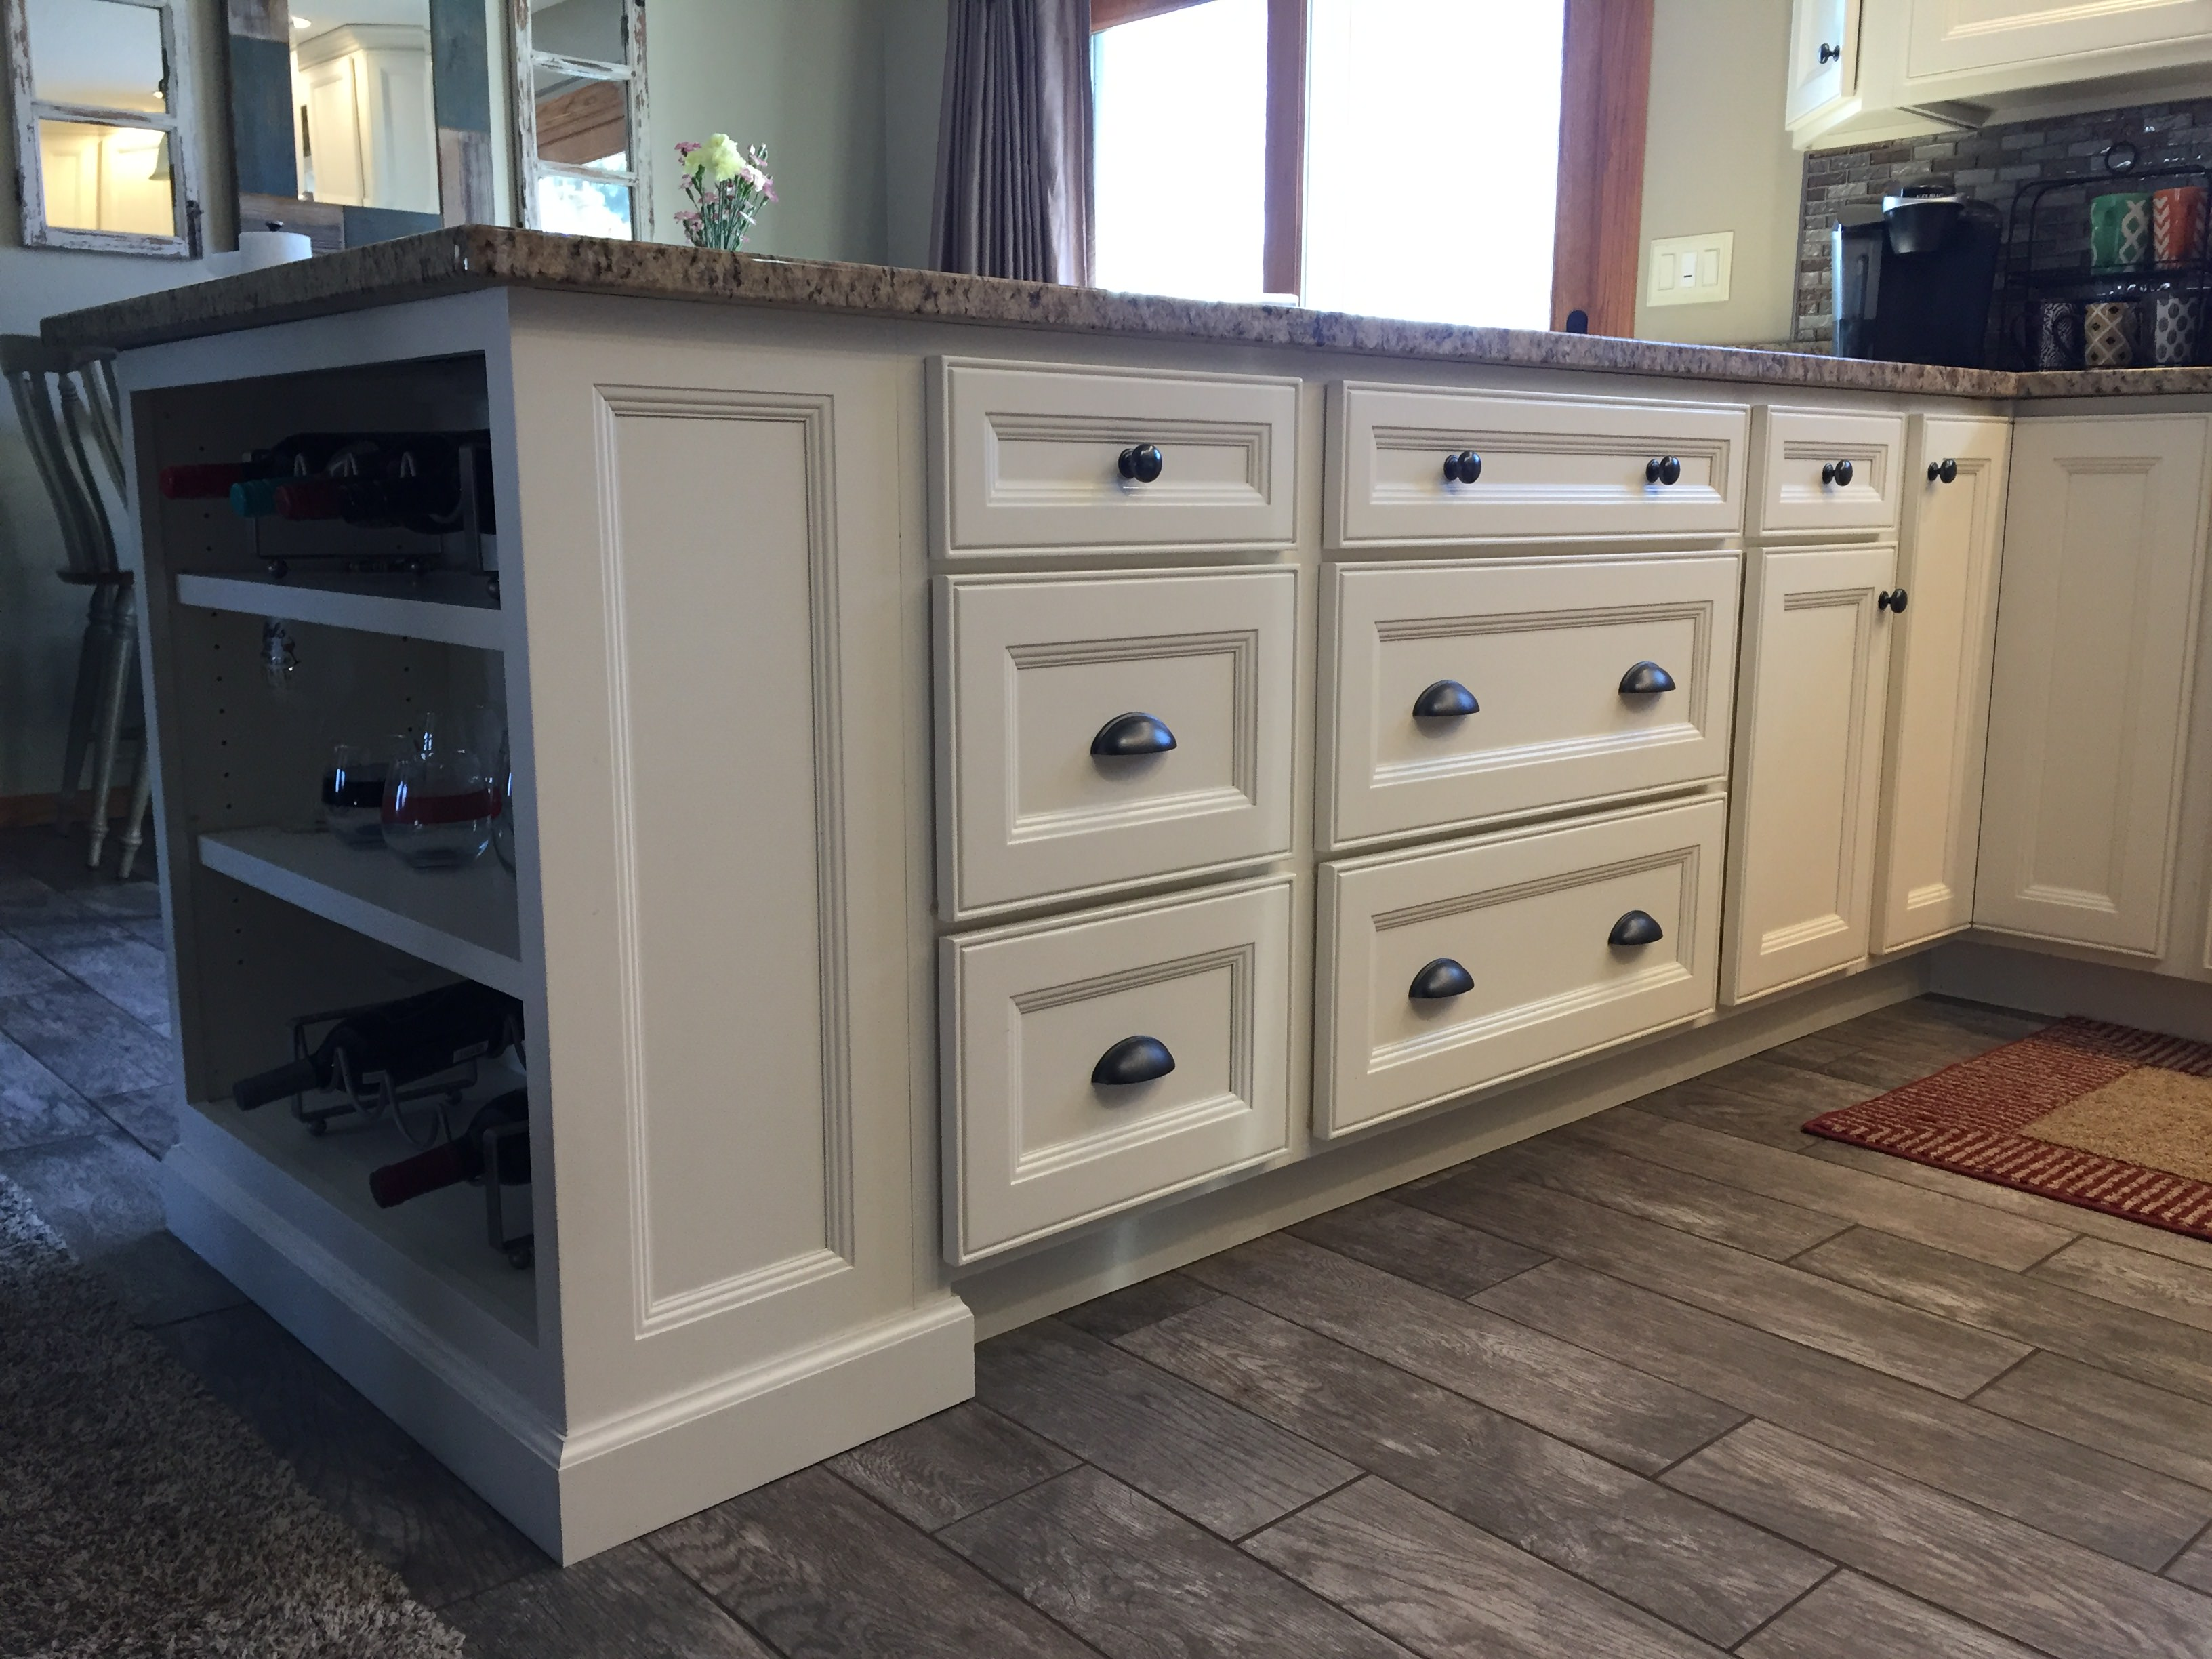 Timberline Cabinetry Design Custom Kitchen Cabinets Solid Wood